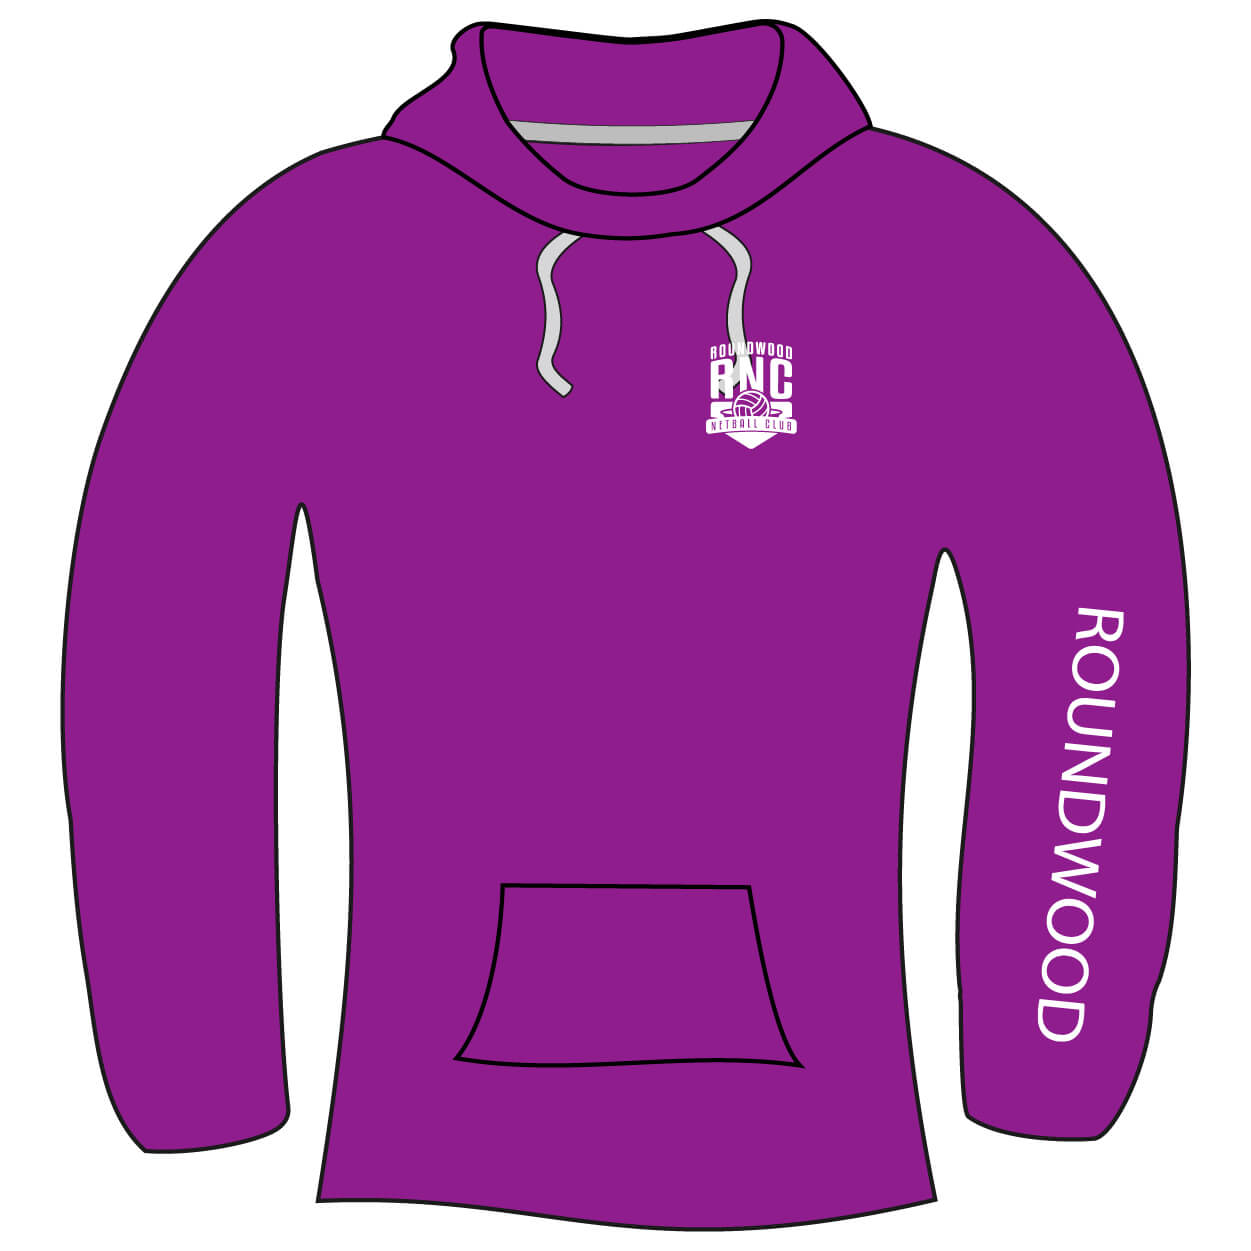 roundwood netball club_Hoodie Front ARM PRINT